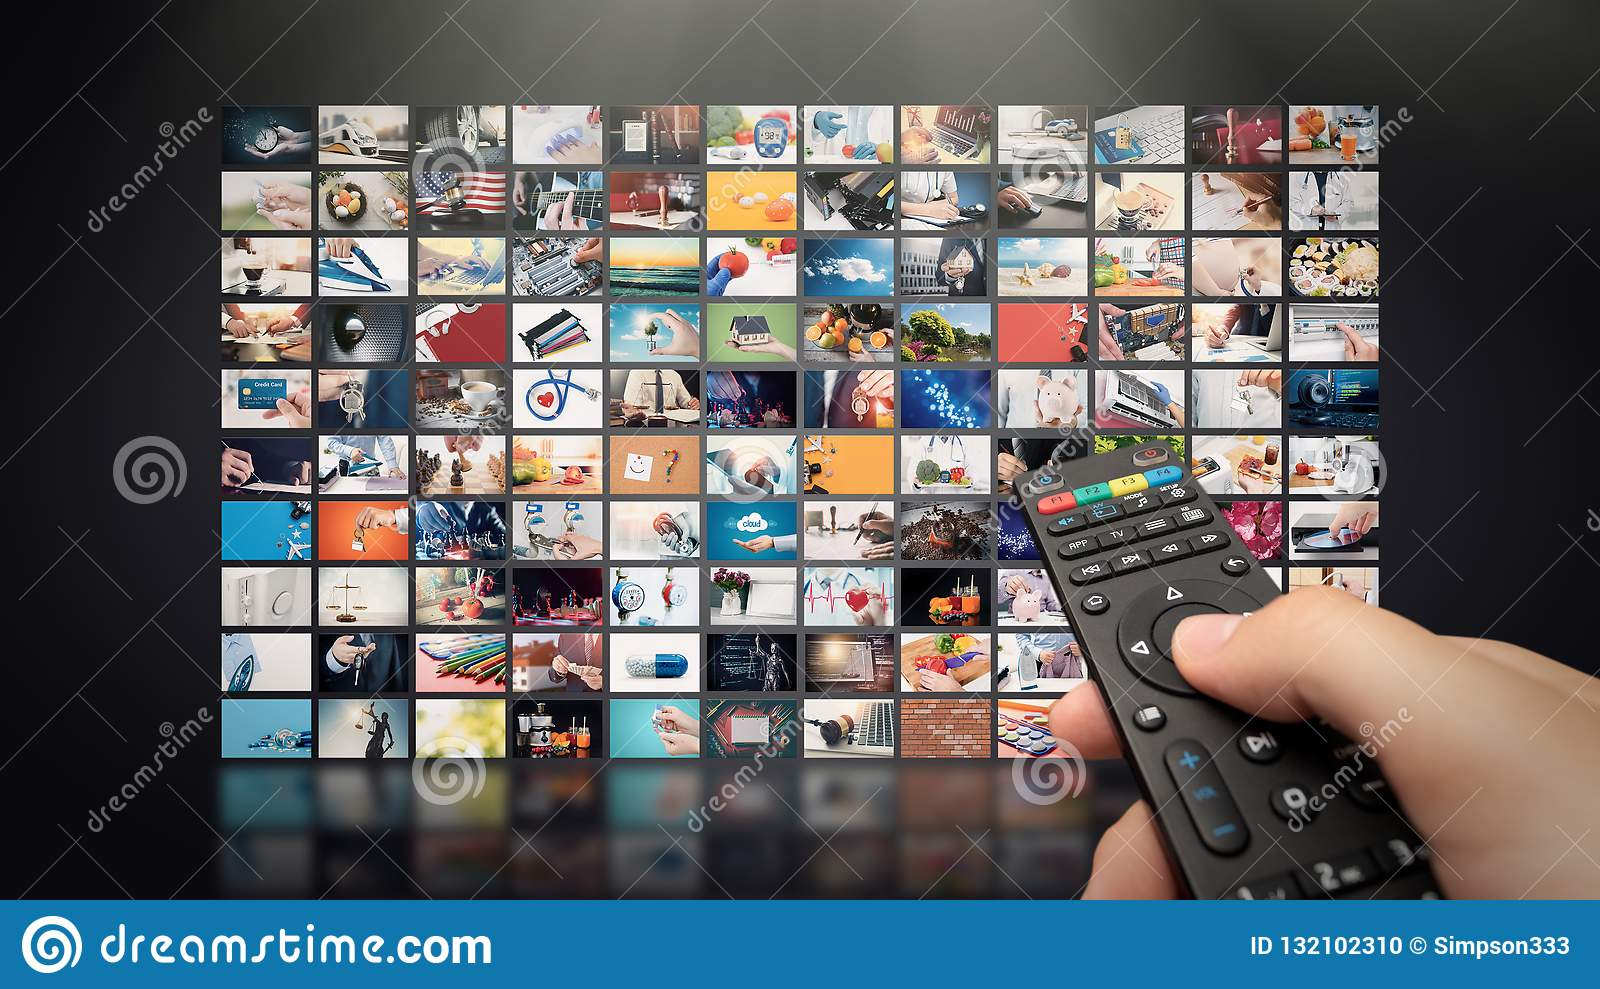 Television Streaming Video  Media TV On Demand Stock Photo